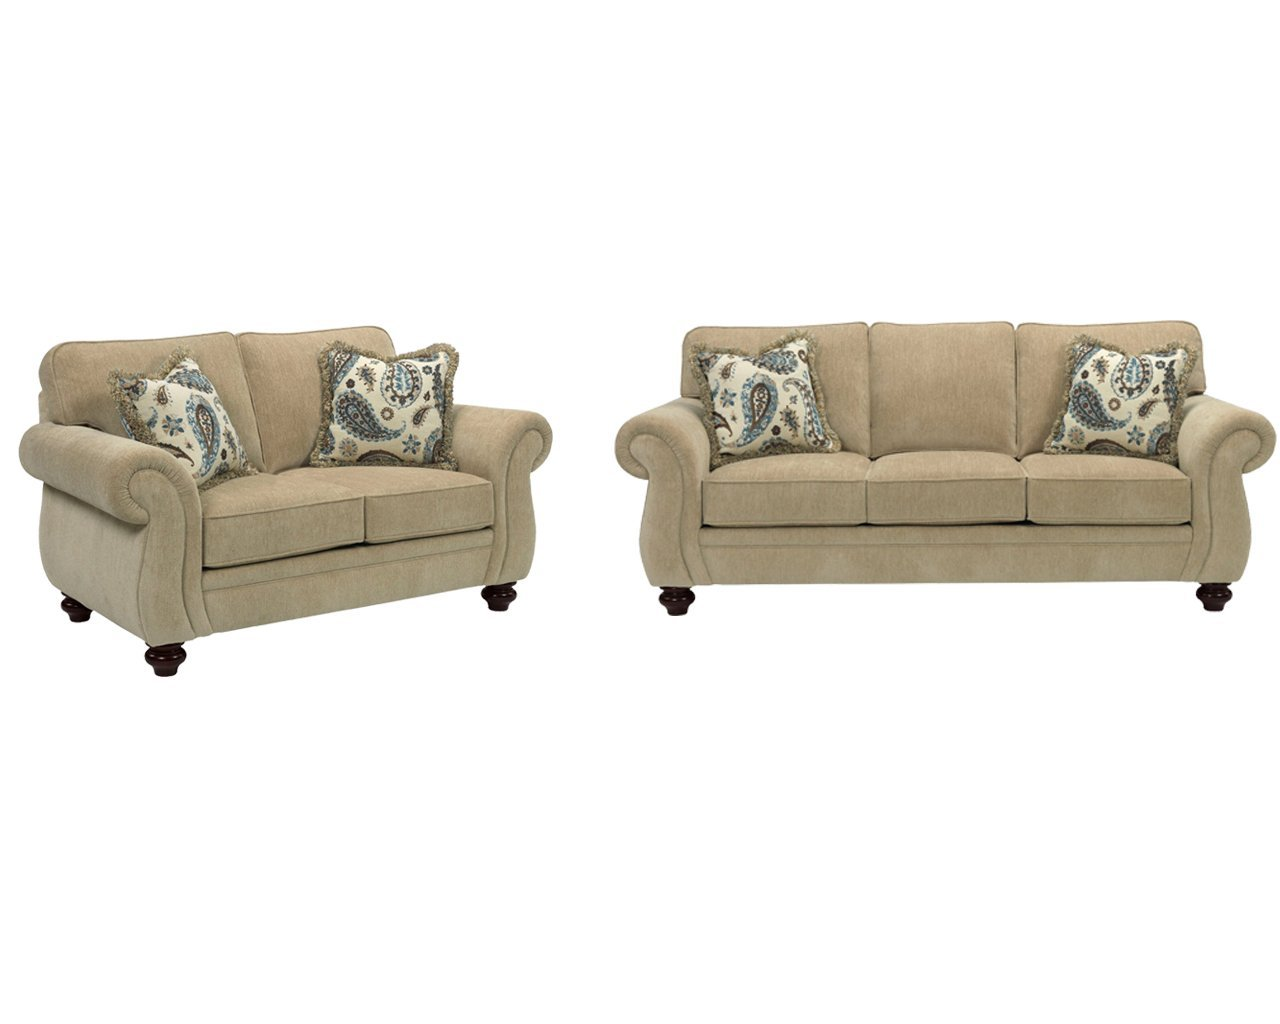 Cheap Sofa Broyhill, find Sofa Broyhill deals on line at Alibaba.com